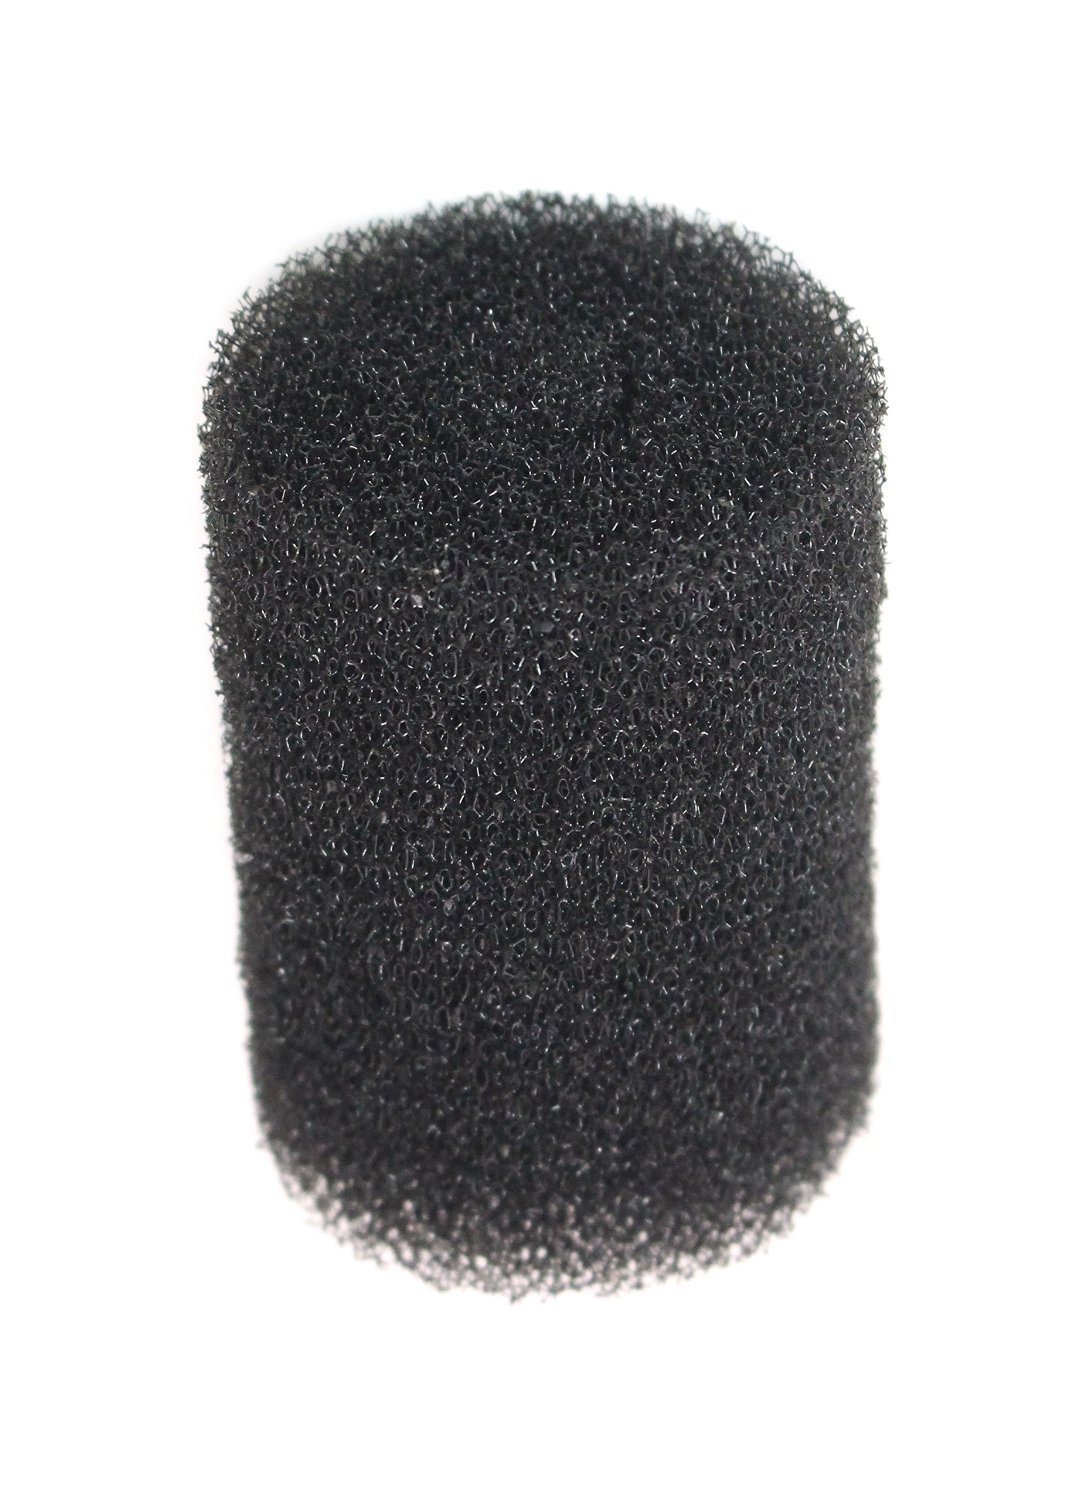 Generic Pool Cleaner Sweep Hose Tail Scrubber for Polaris 180 280 360 380 9-100-3105 JSP Manufacturing PP-91003105